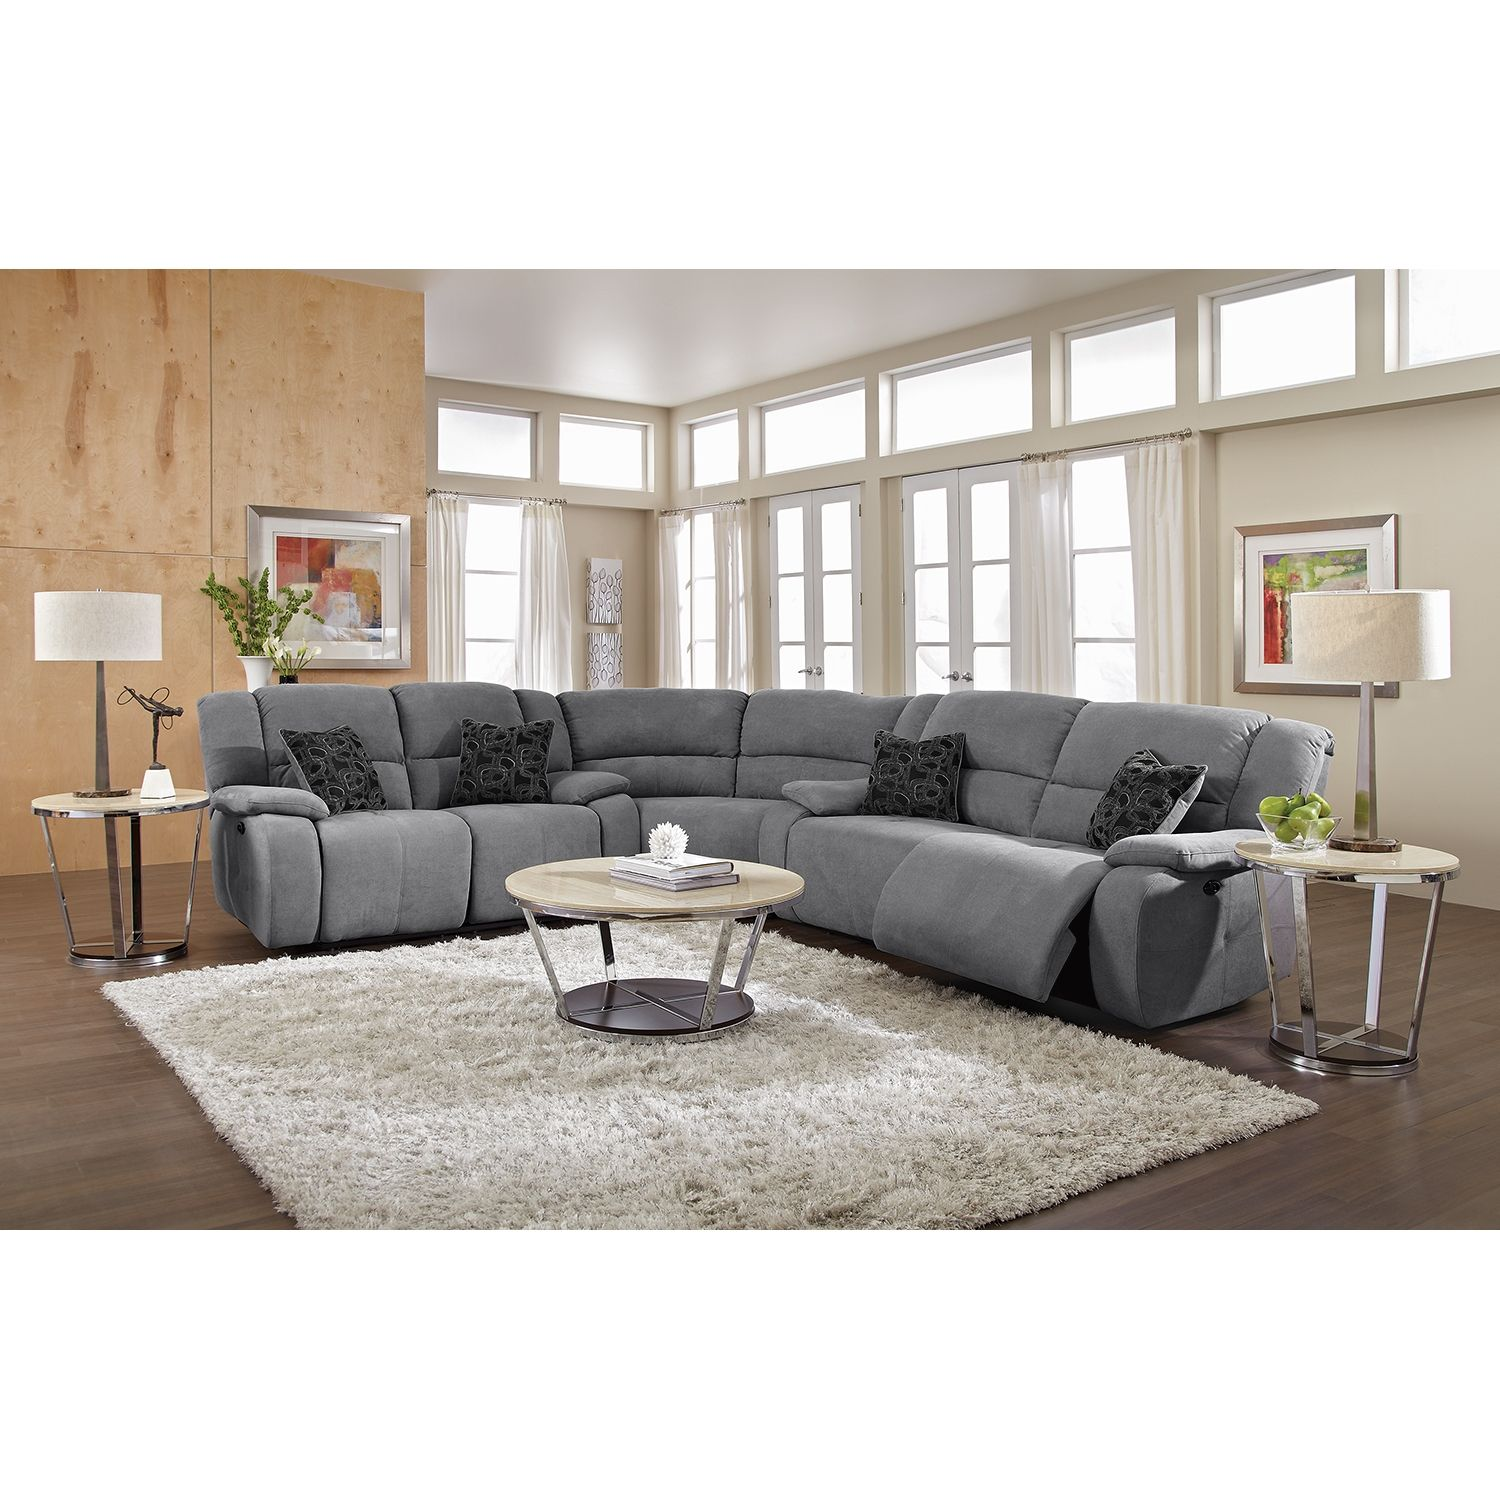 Love This Couch Gray Is Awesome Future Living Room Pinterest Living Room Furniture